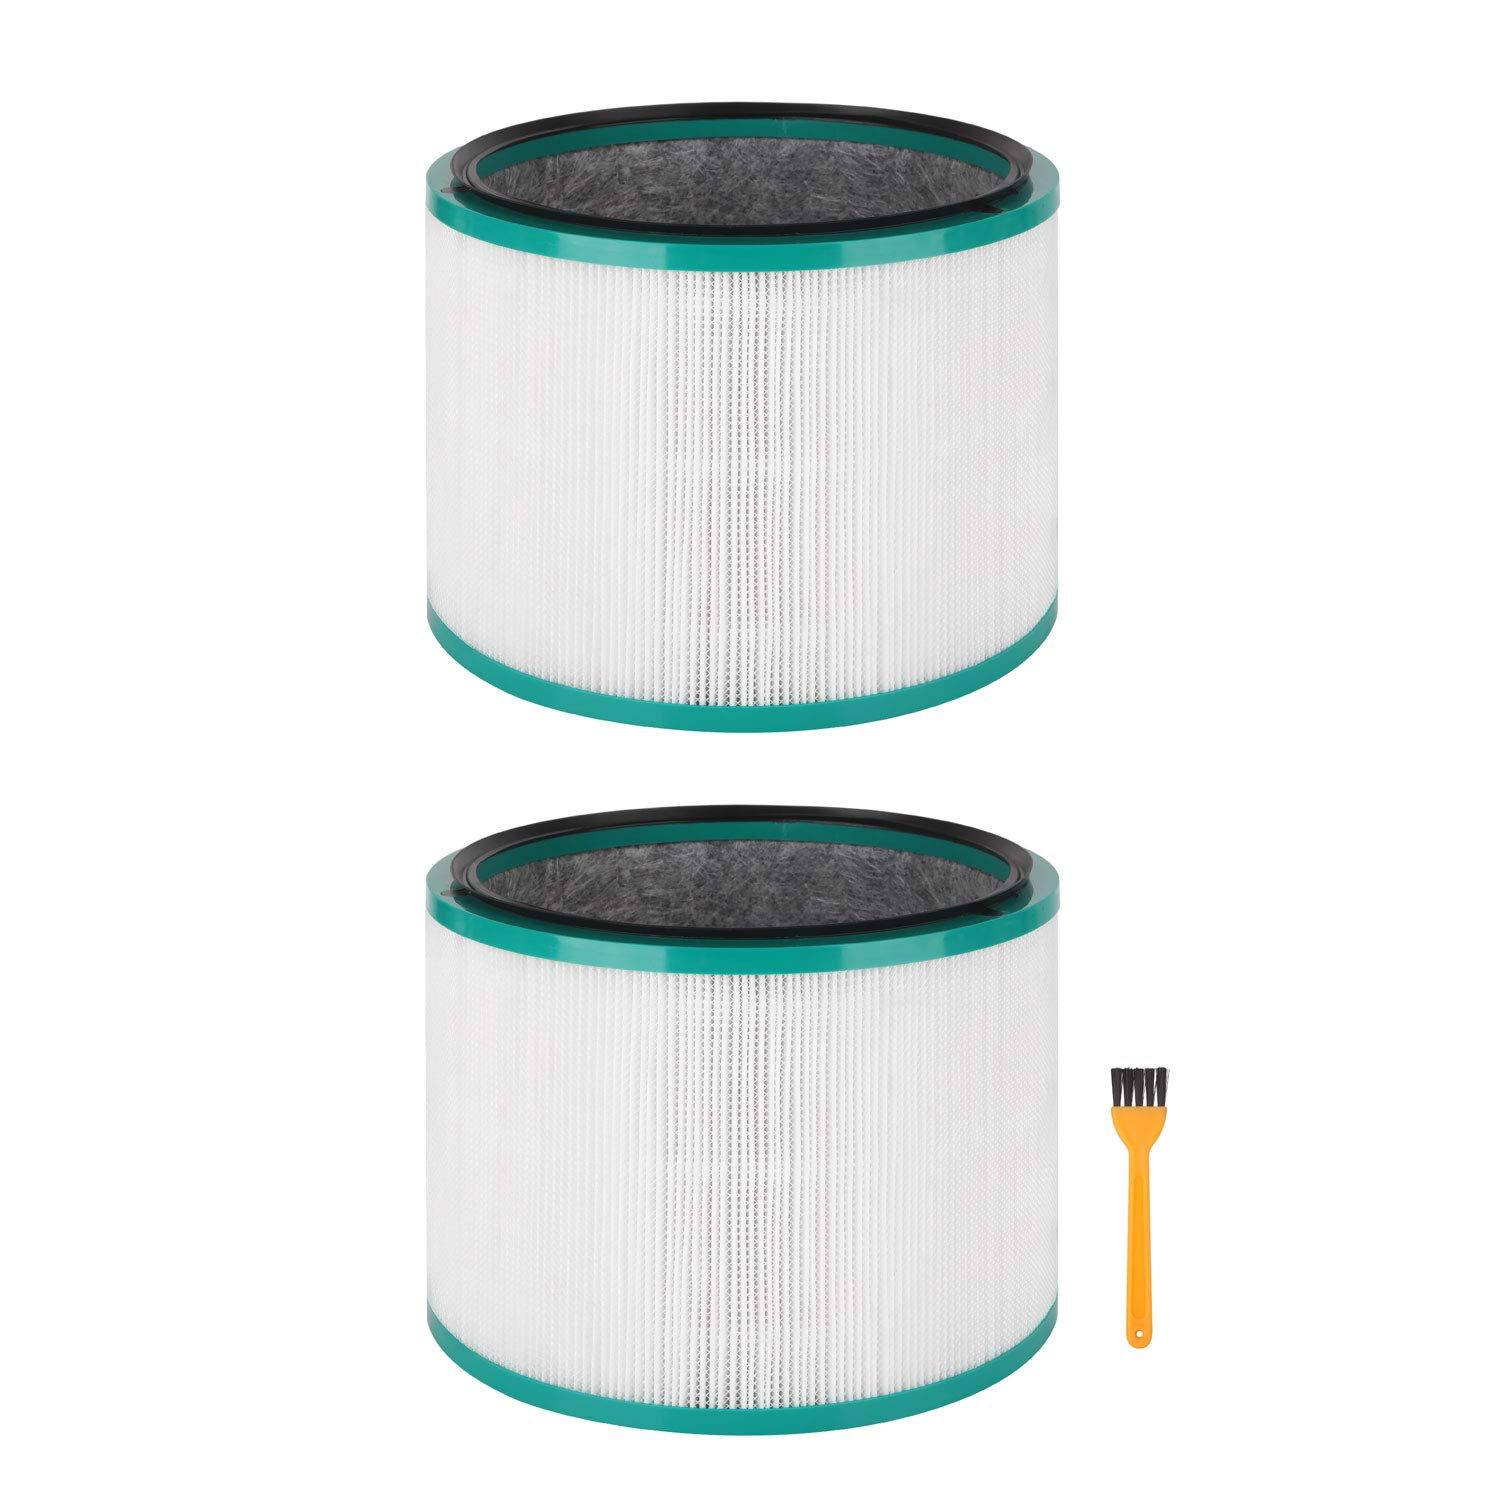 Colorfullife 2 Pack Replacement HEPA Filter for Dyson Desk Purifier for Dyson Pure Cool Link Desk, for Dyson Pure Hot + Cool Link, Replaces Part 968125-03